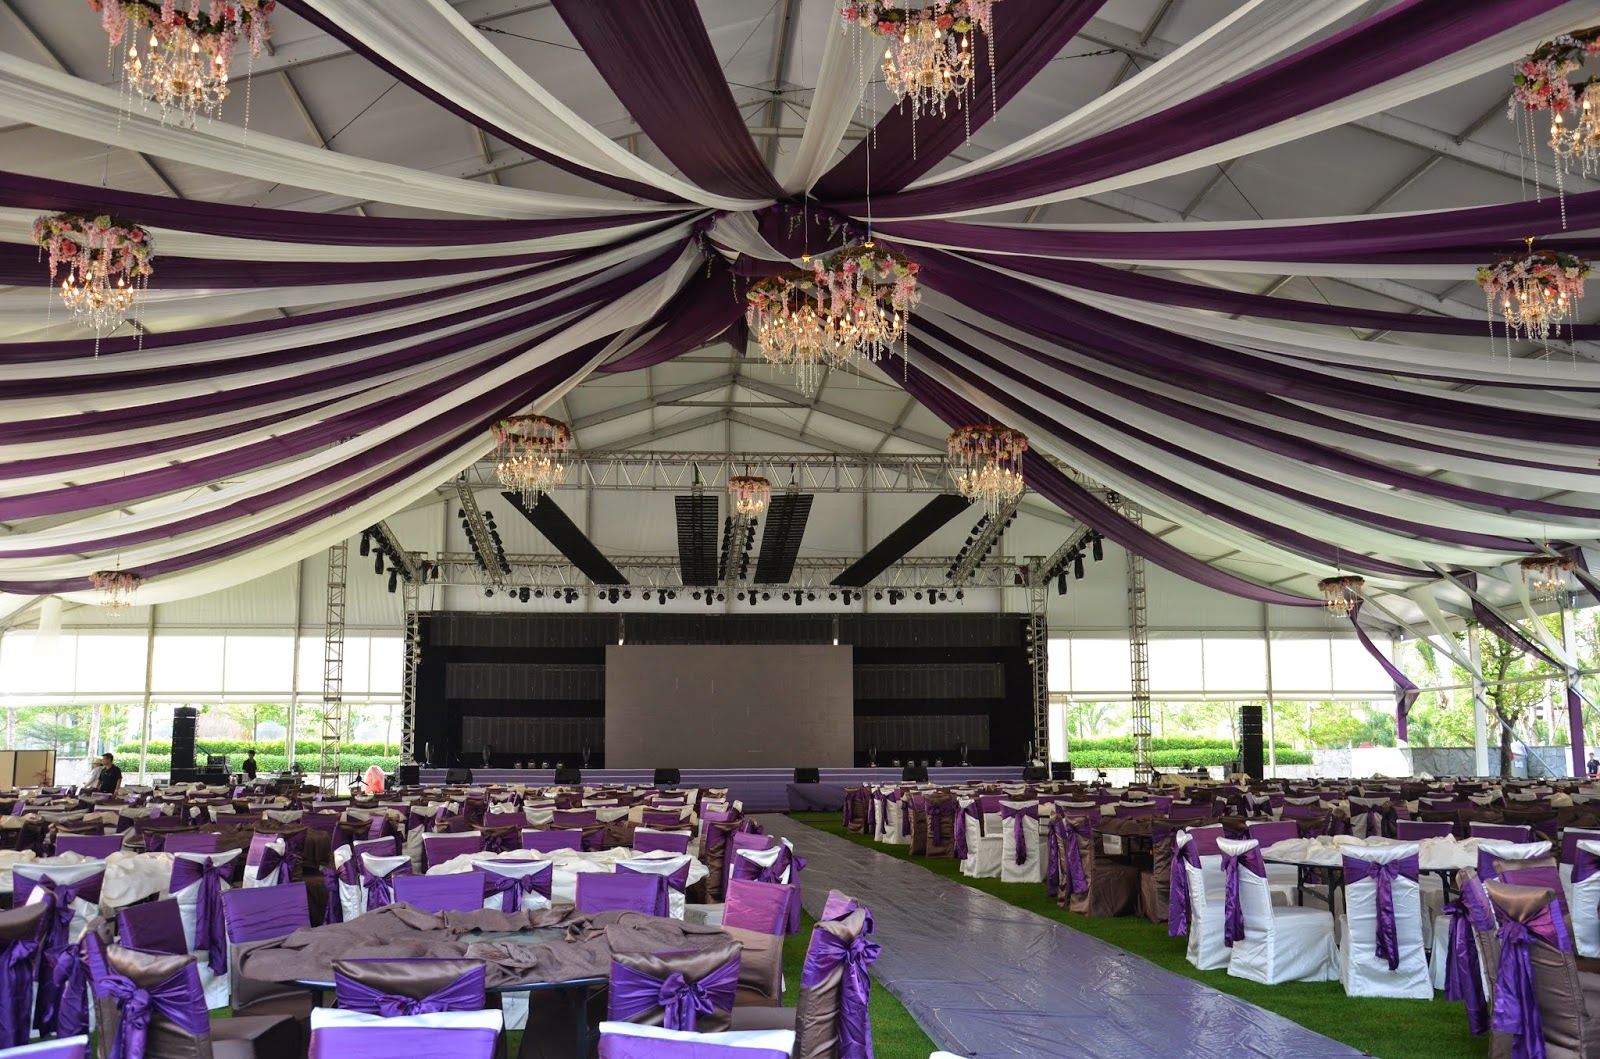 & Shelter Tents: Luxury Wedding Tent with Great Looking Decorations